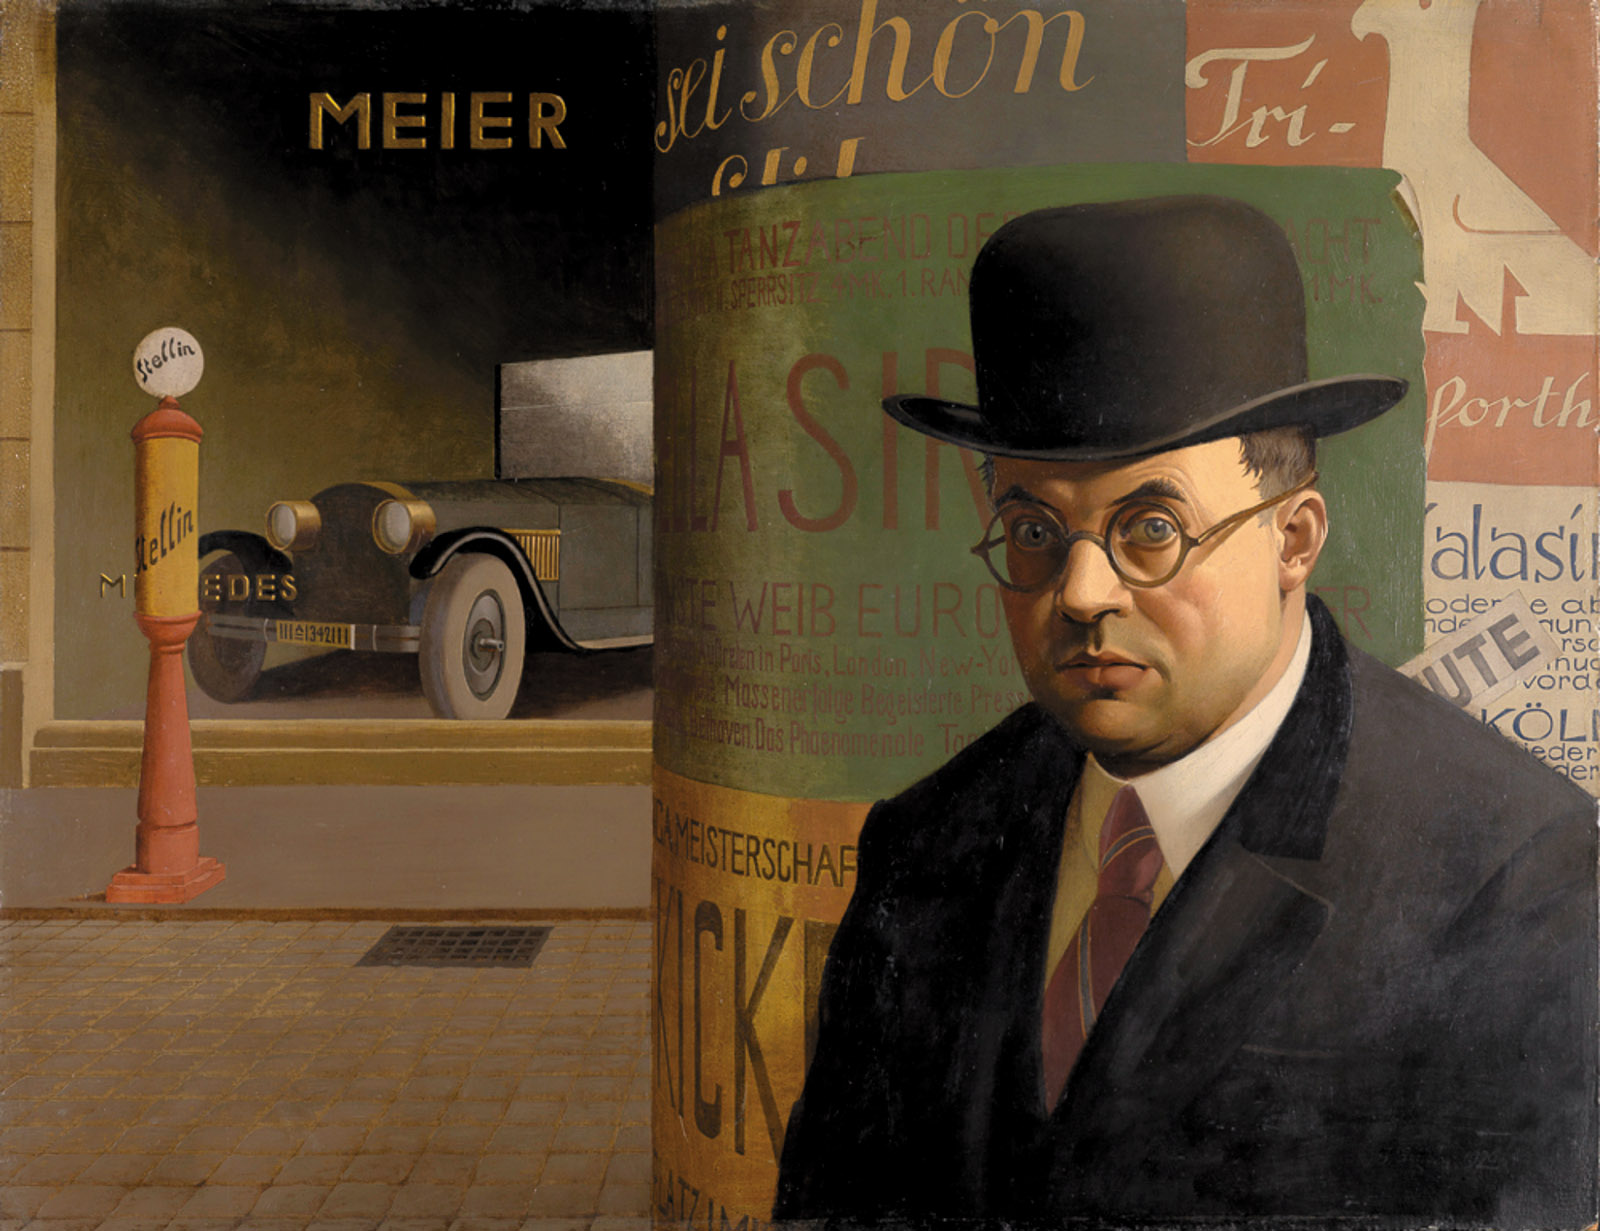 Self-Portrait in Front of an Advertising Column by Georg Scholz